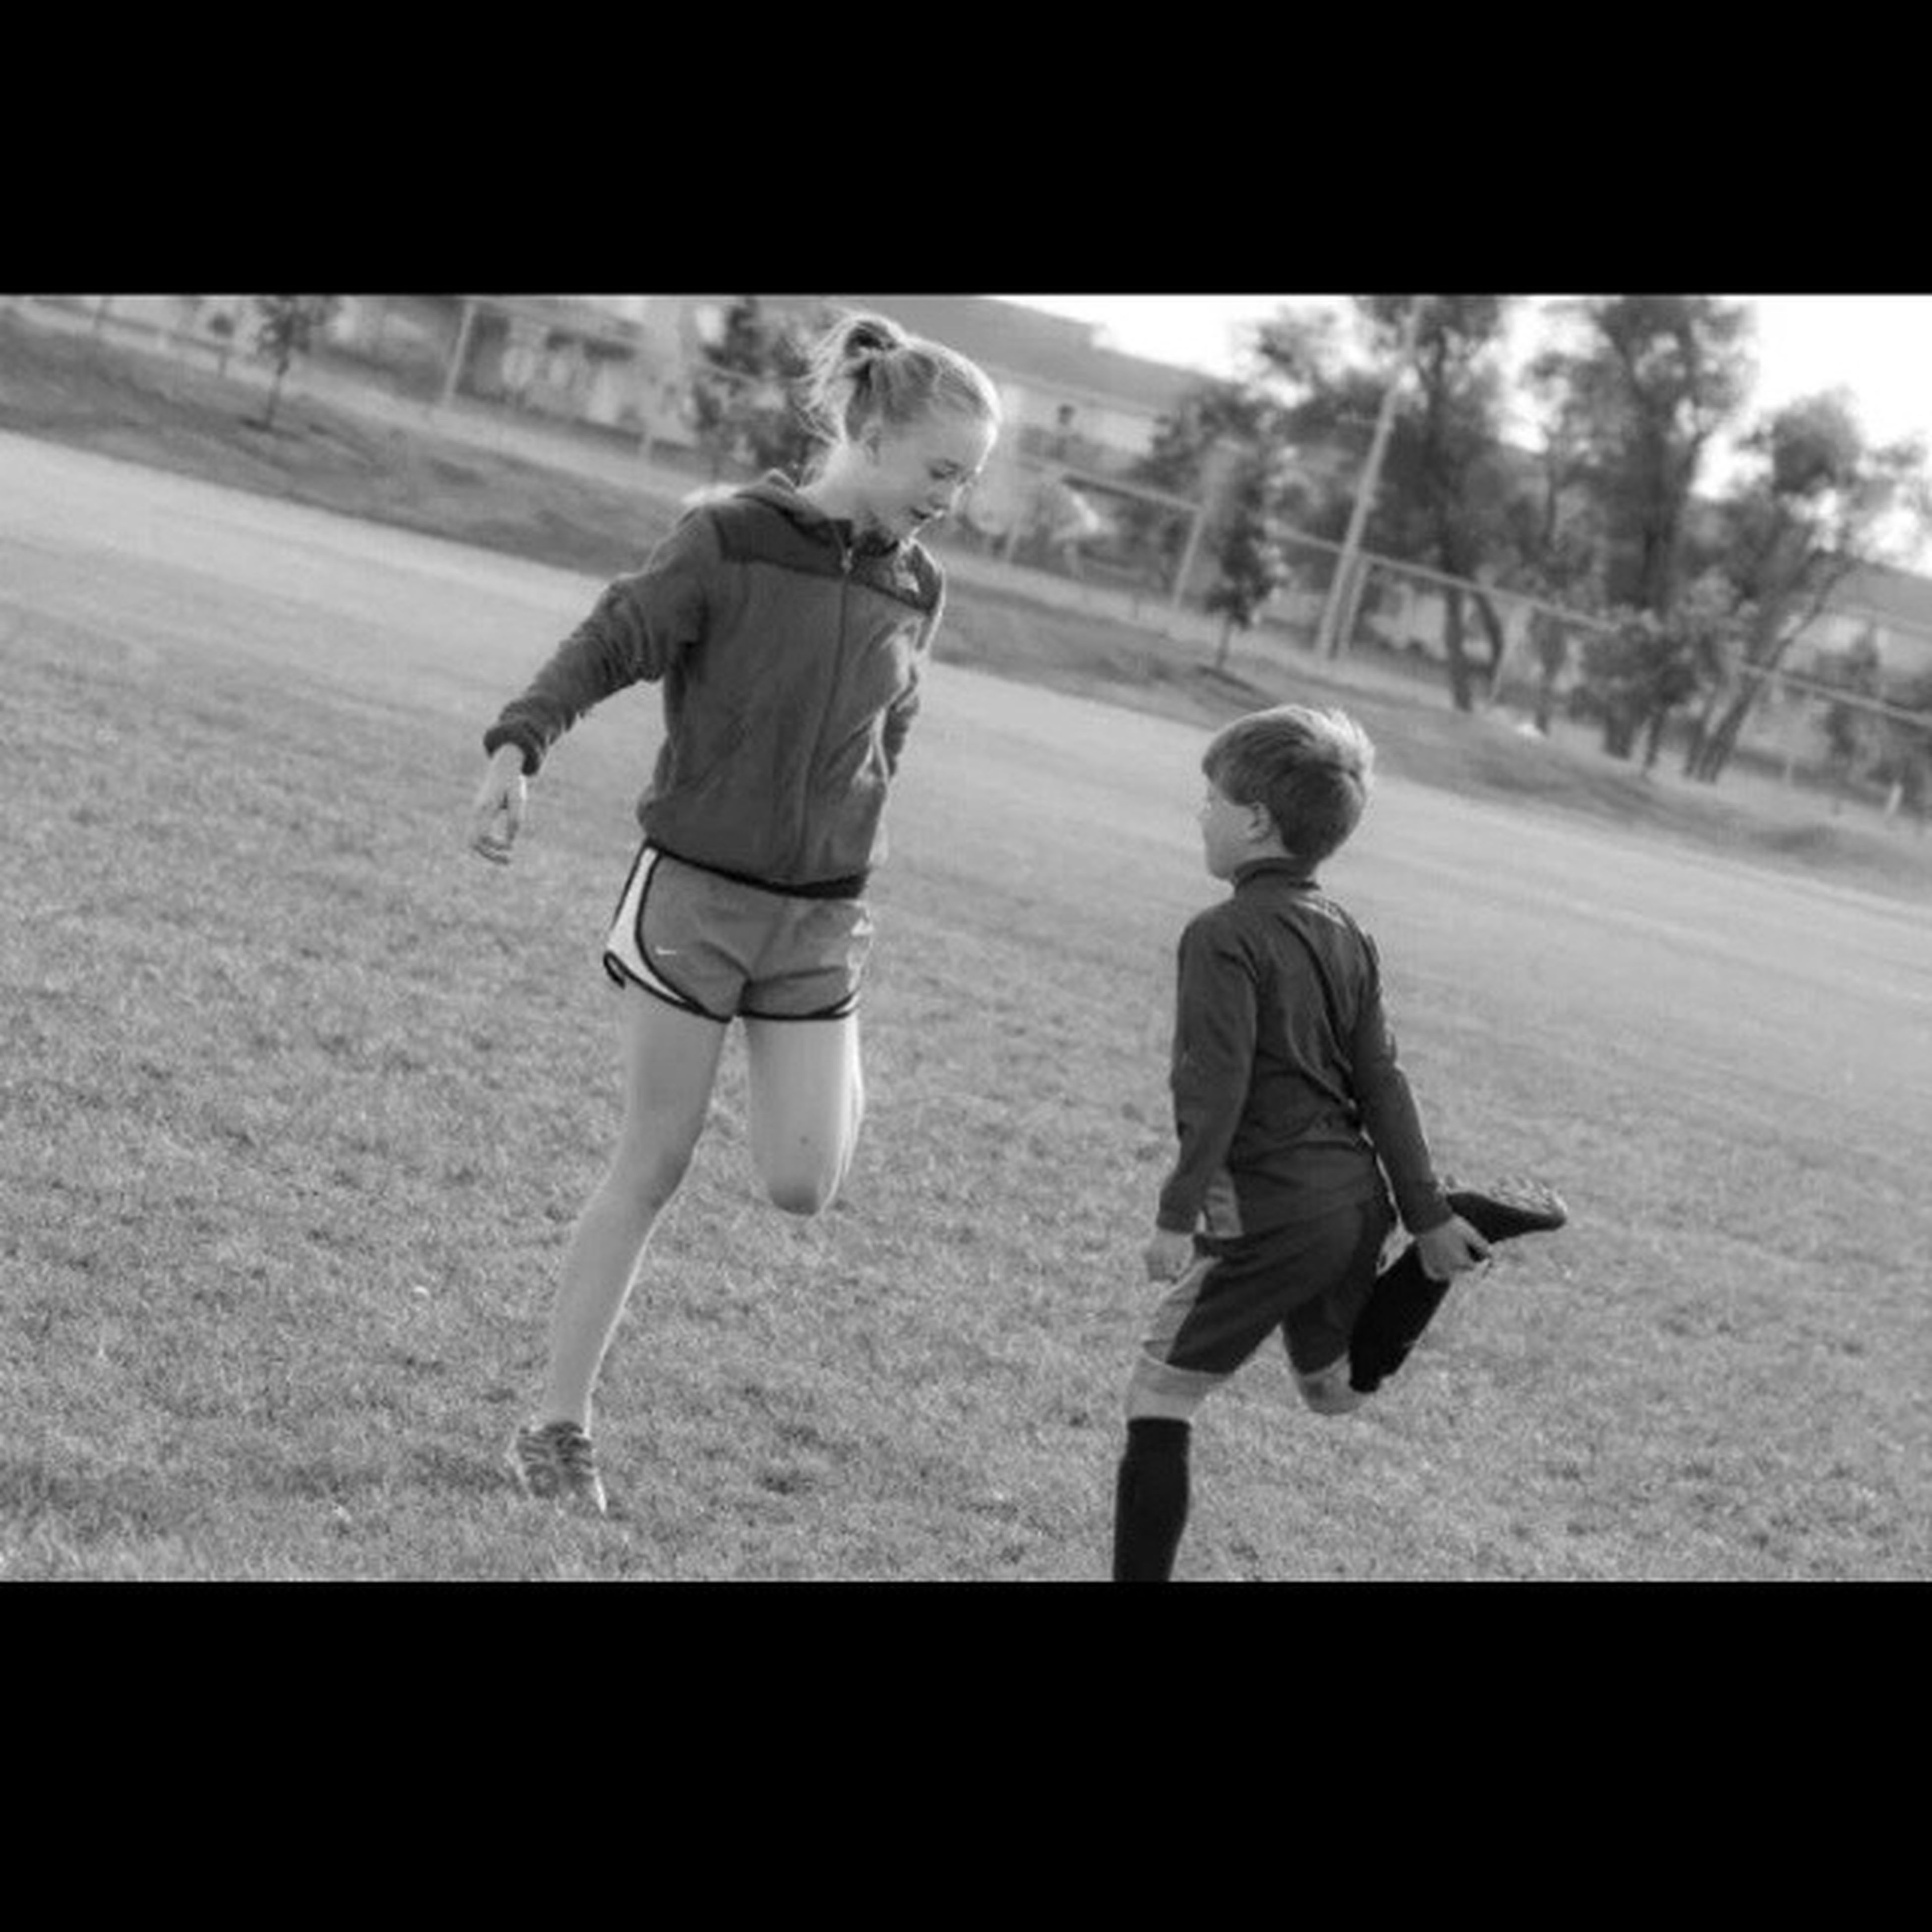 Legit brother and sister picture. 2011 Soccertournament Helpinghimpractice